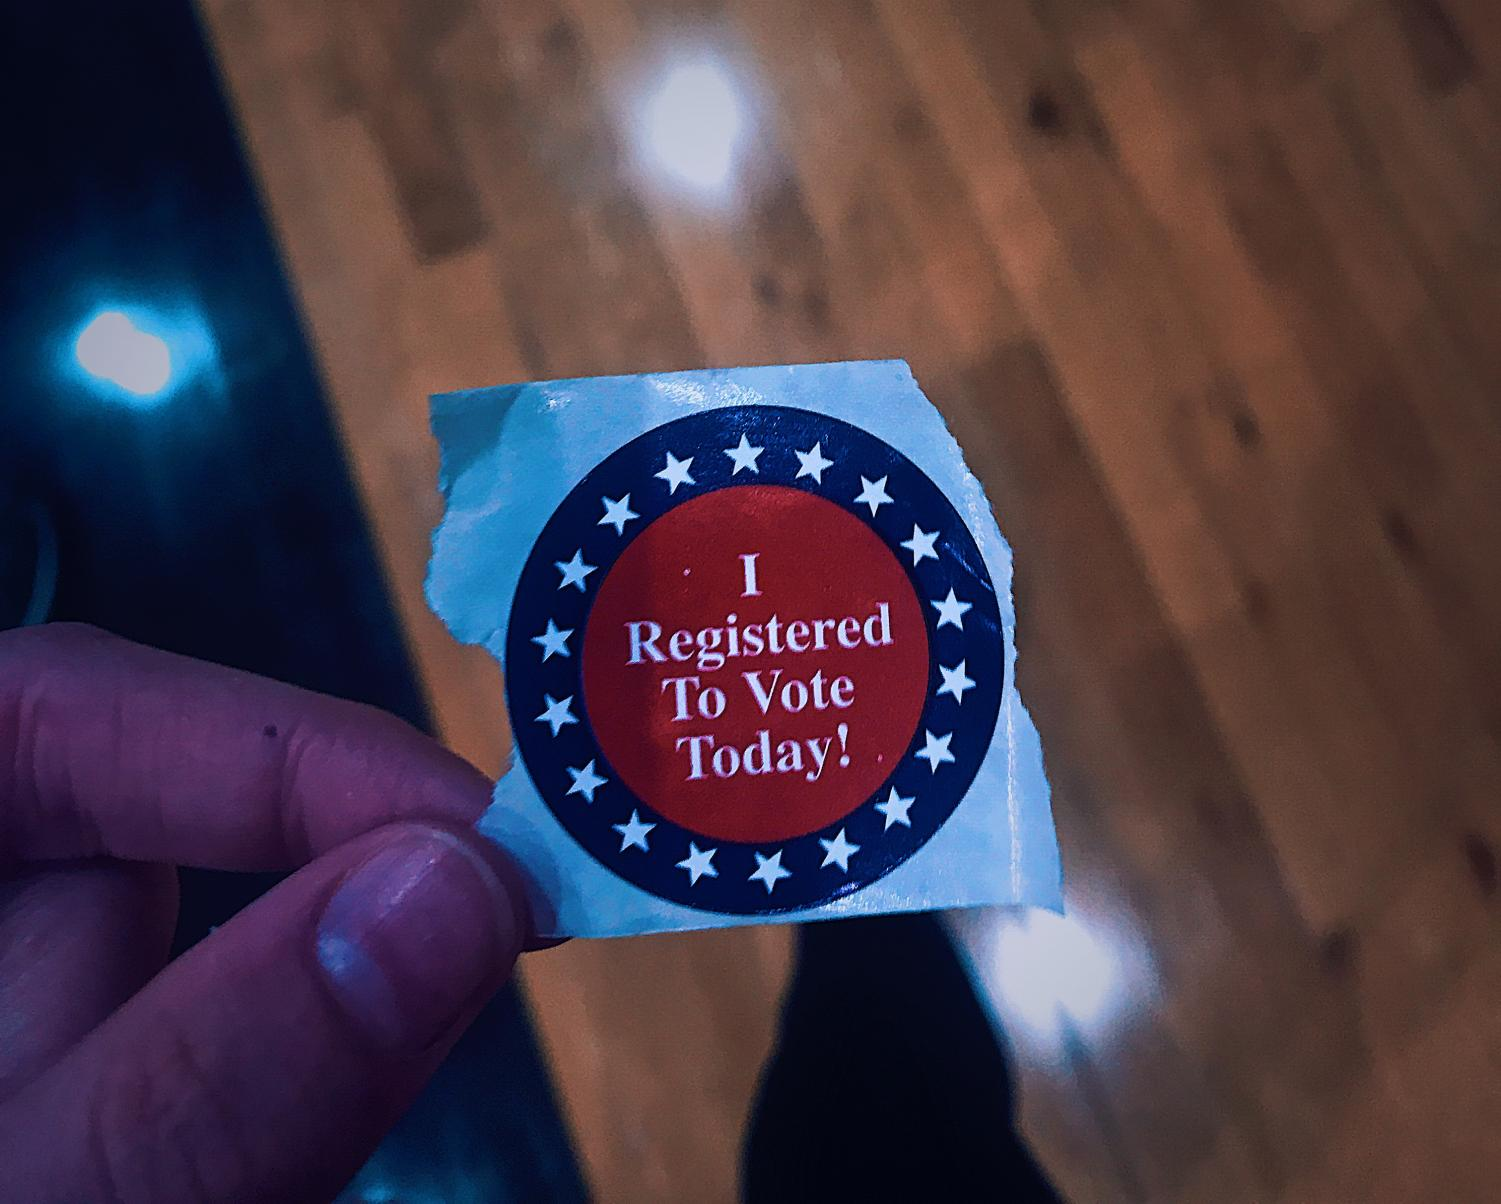 Students who registered received this sticker.